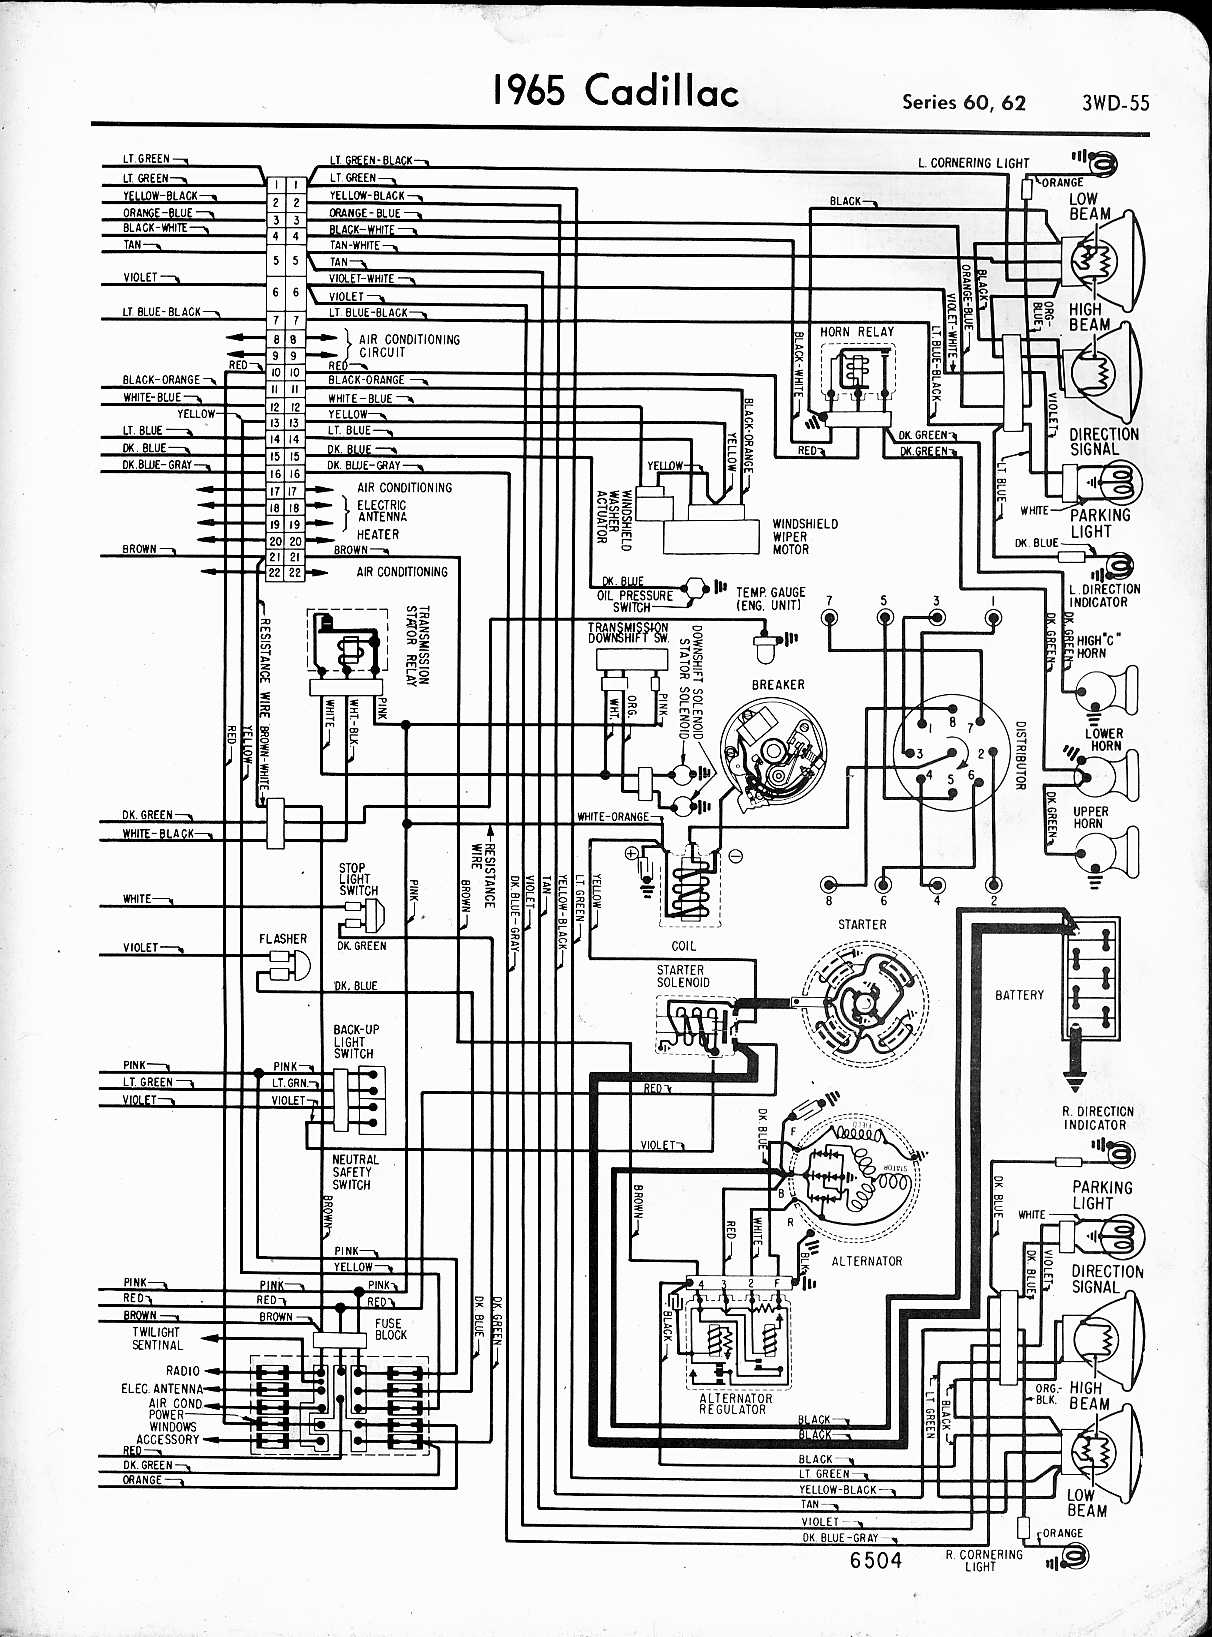 1999 Cadillac Window Switch Wiring Diagram Detailed Schematic Diagrams Subaru Schematics 1994